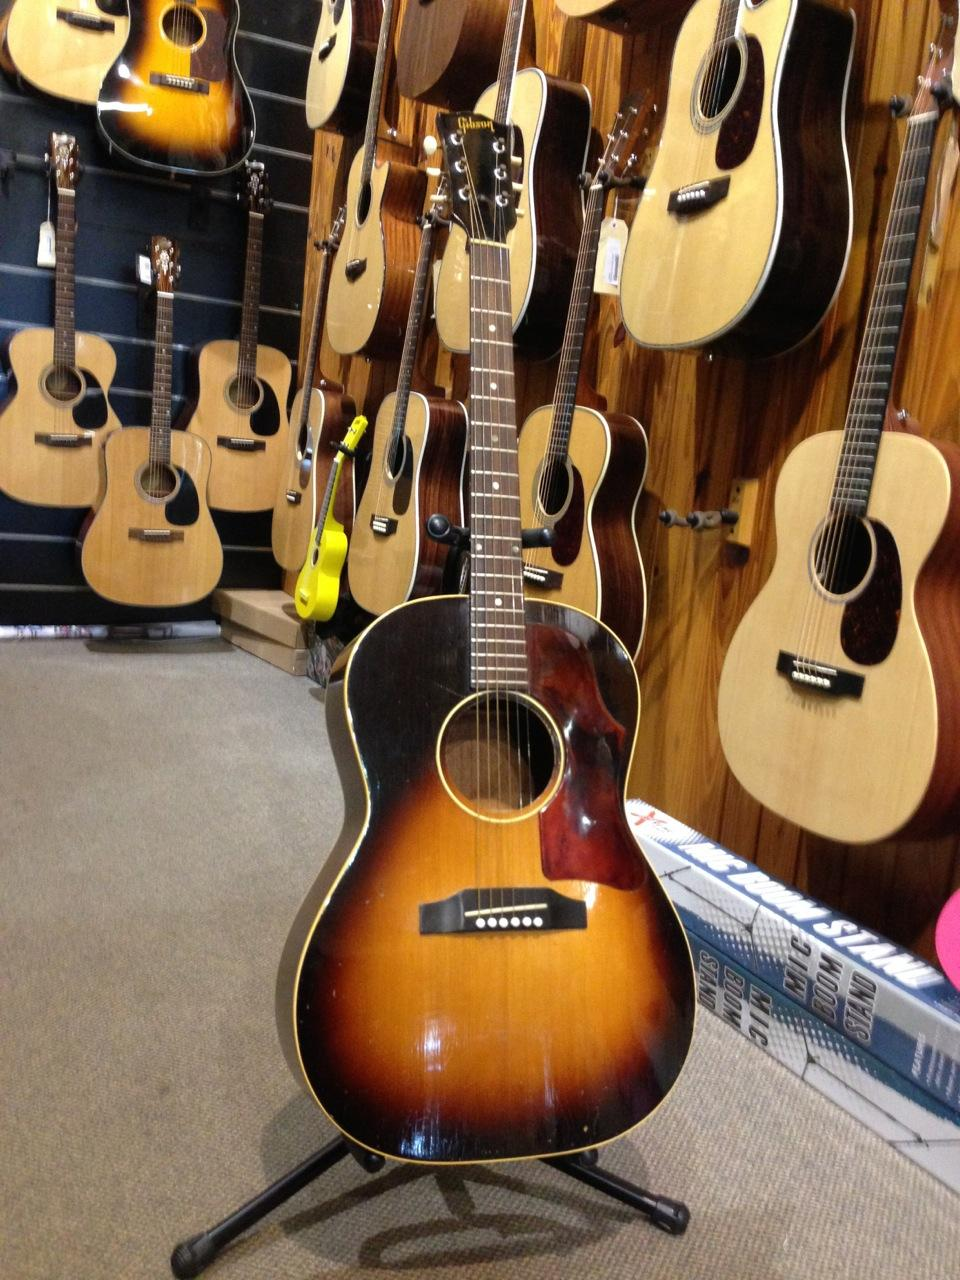 GIBSON LG1 1968 ACOUSTIC